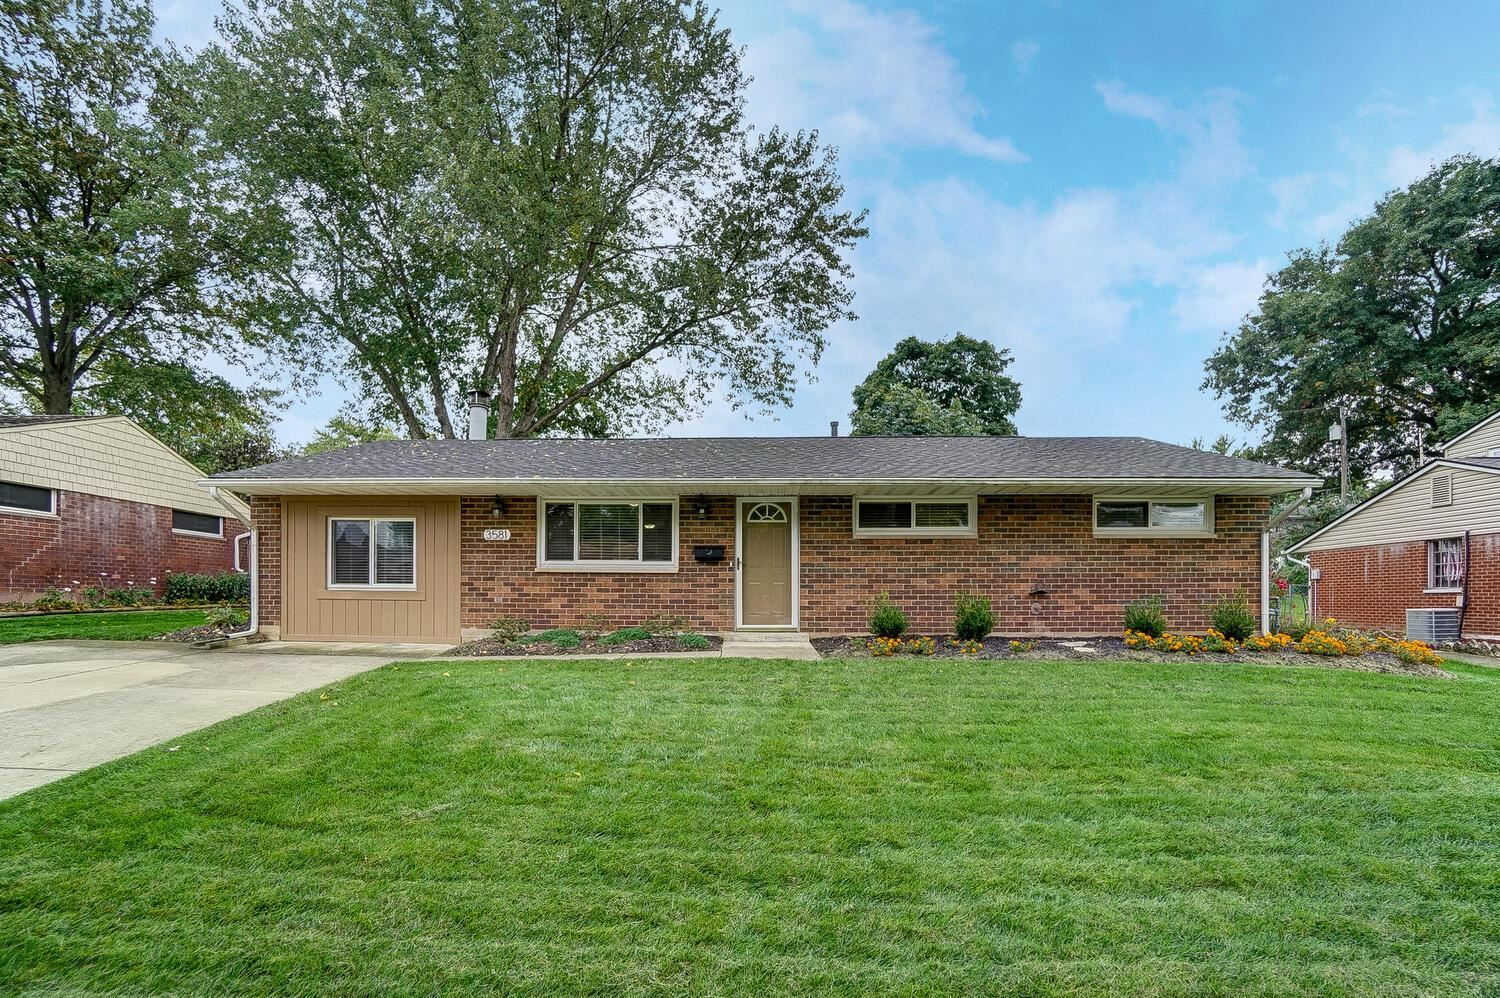 Photo of 3581 Stockholm Road, Westerville, OH 43081 (MLS # 221040222)